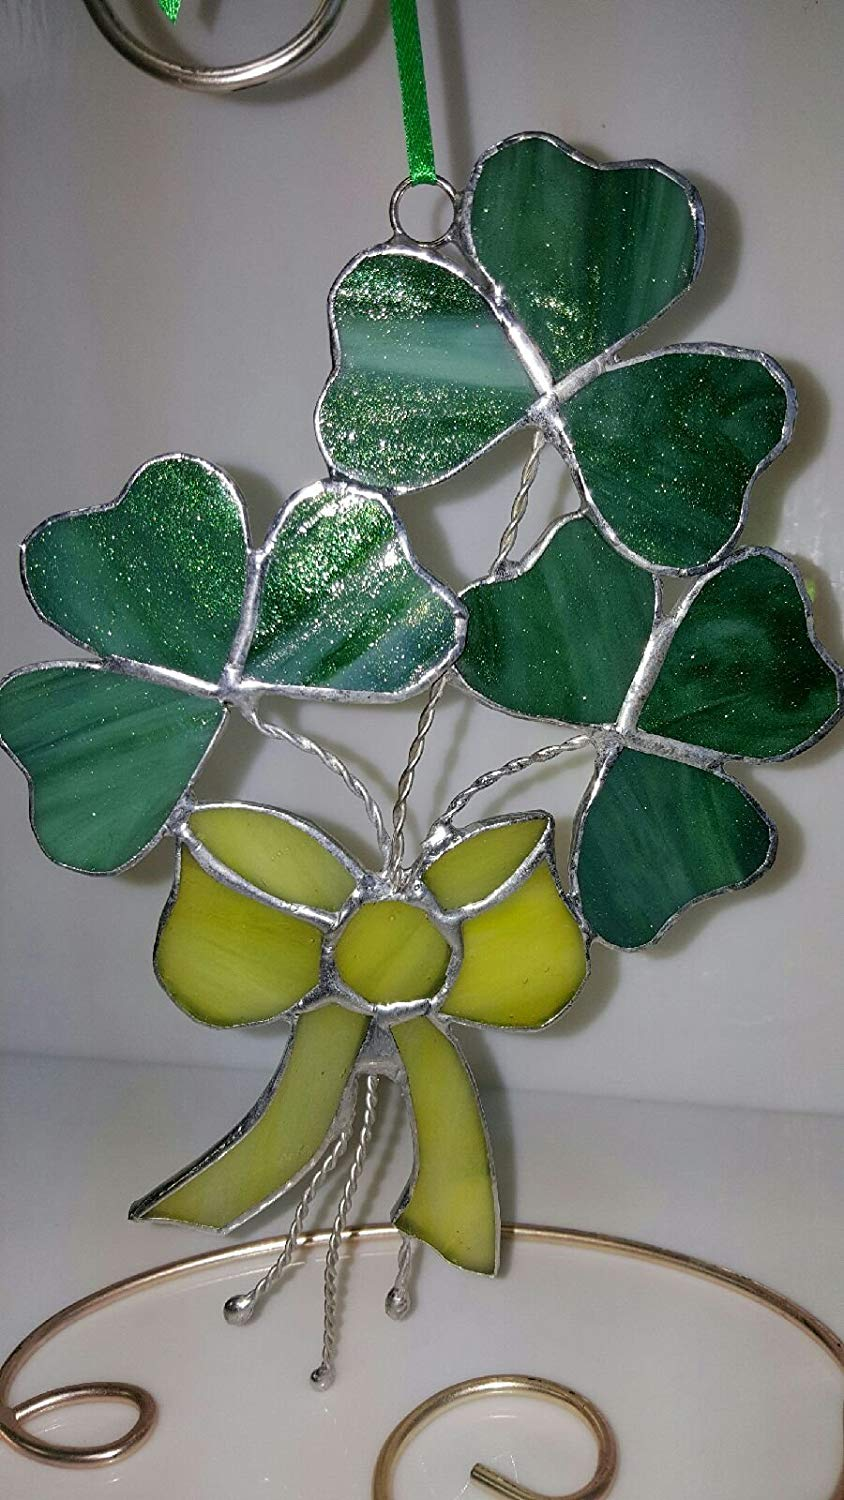 """Shamrock """"Luck of the Irish Bouquet"""", Suncatcher, Stained Glass, Ornament, Beautiful, Custom Handmade 8"""" T and is 5"""" W"""